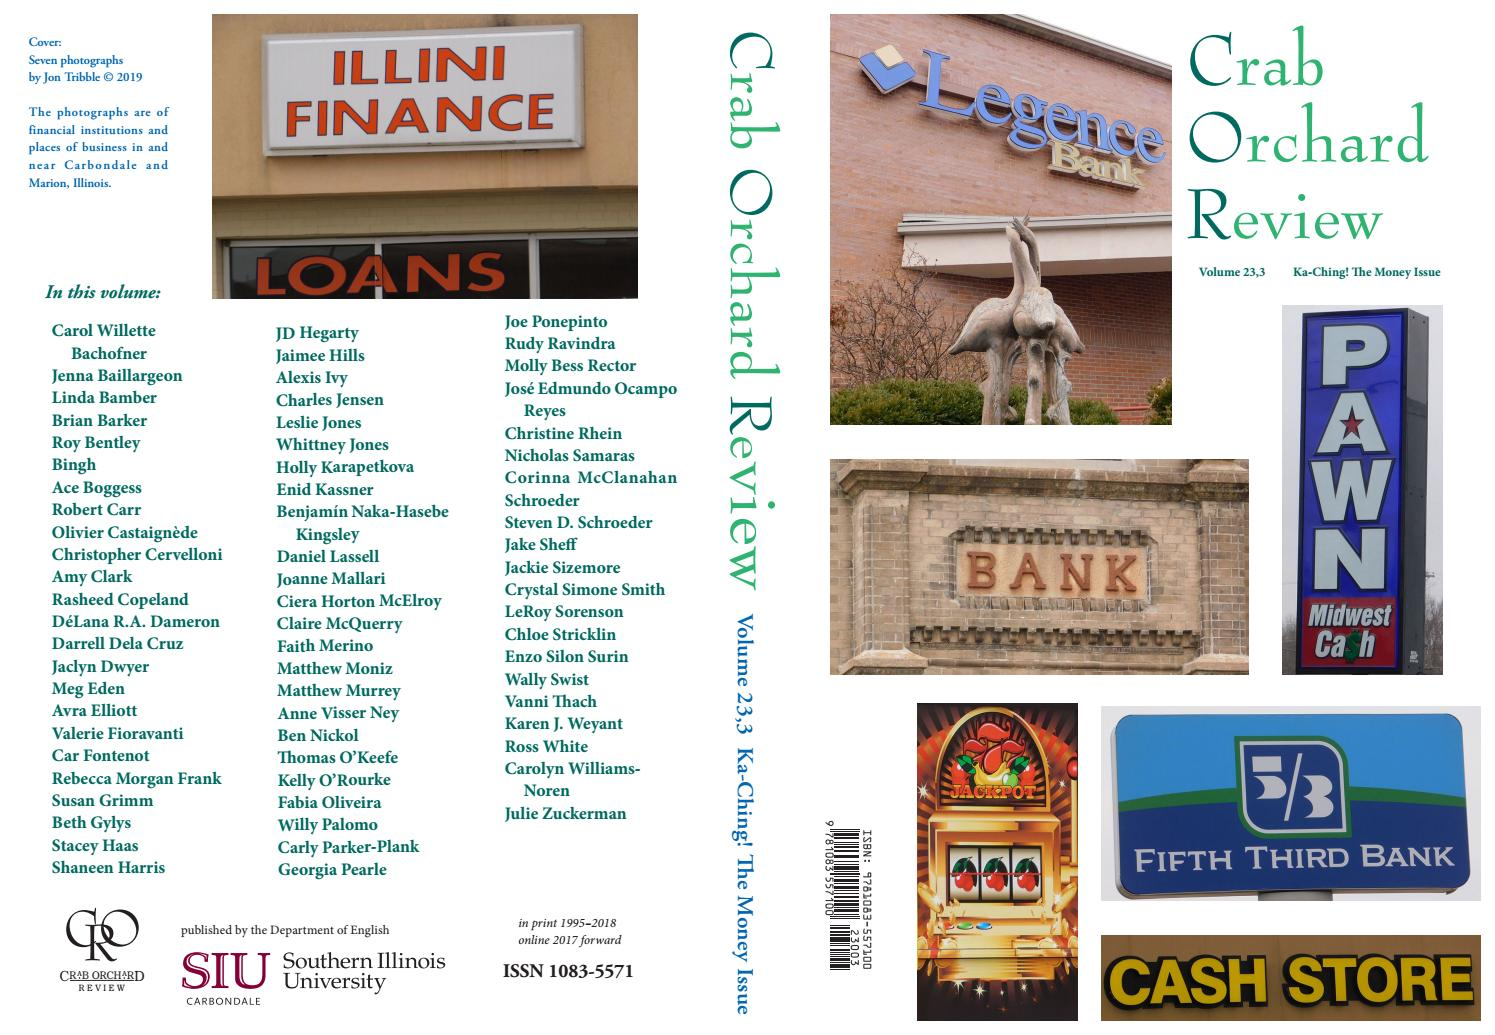 48f44f3ed Crab Orchard Review Vol 23 No 3 March 2019 by Crab Orchard Review - issuu